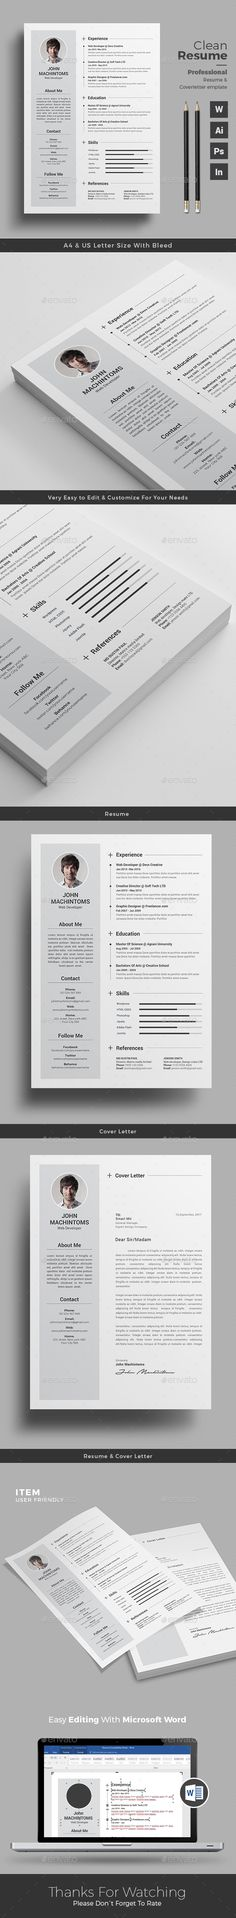 Resume Templates For Mac  Free Word Documents Download  Cv